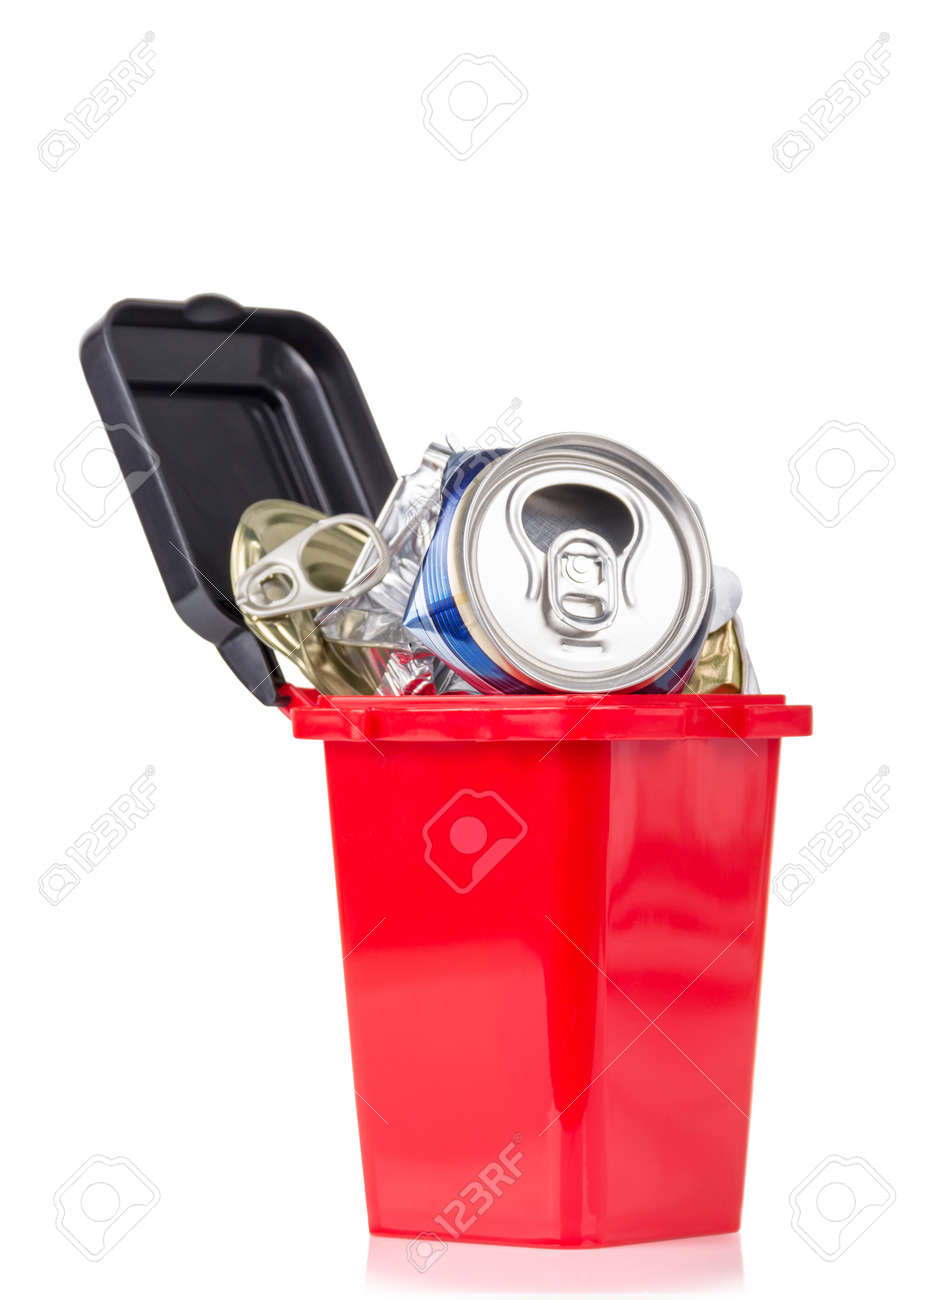 Red trash can and metal household waste isolated on white background - 164071606